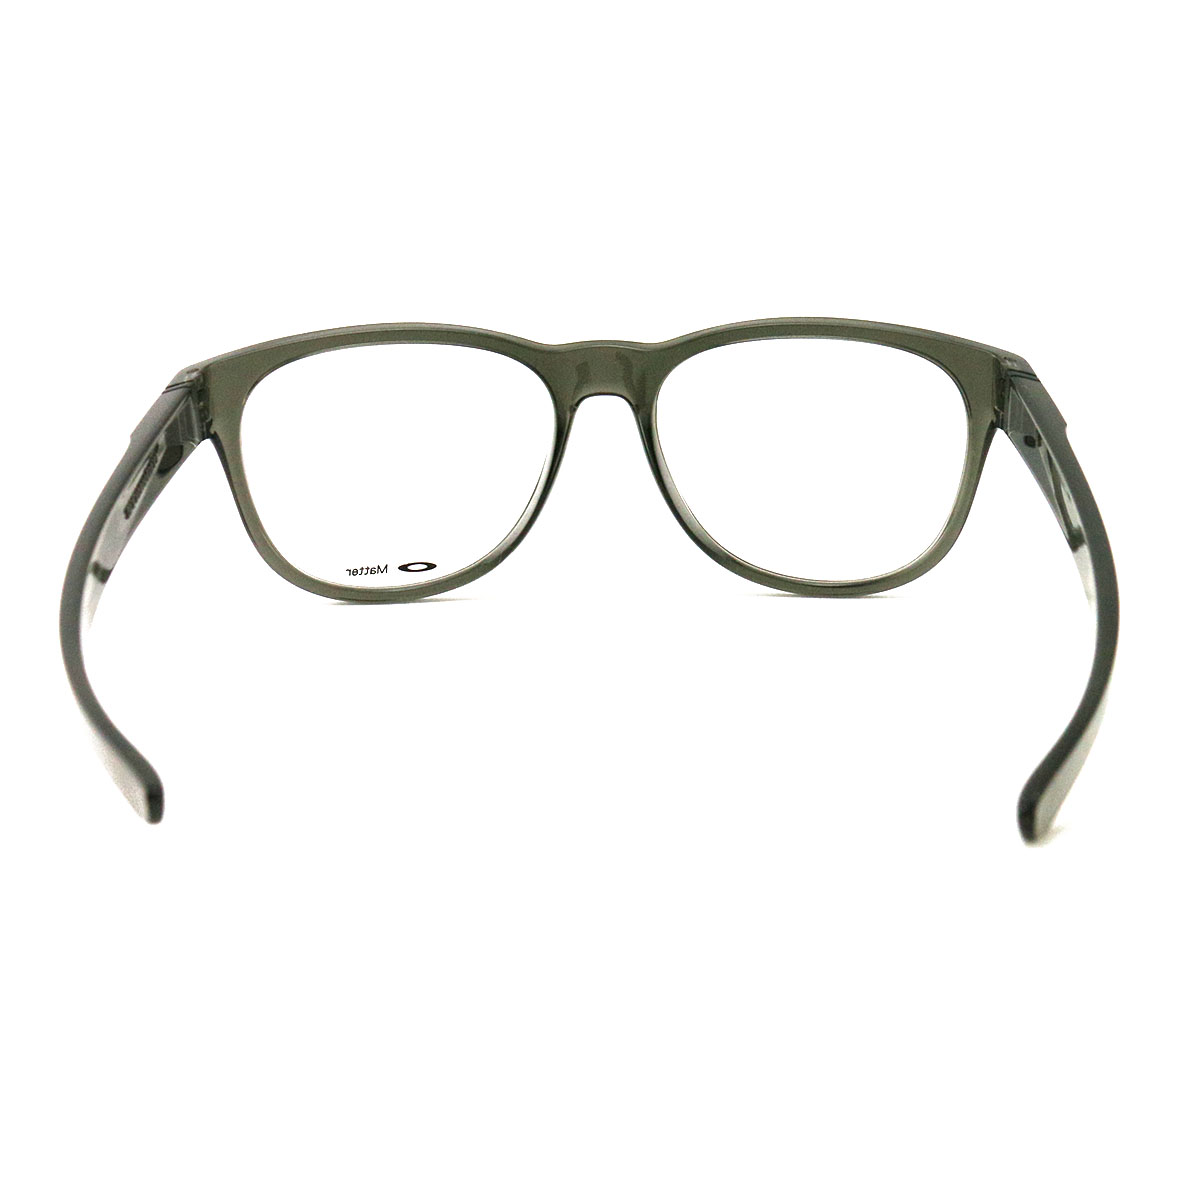 c99c34bcbd128 Oakley Stringer Clear Black Eyeglasses OX8088-04 Demo Lens 55 16 145 ...